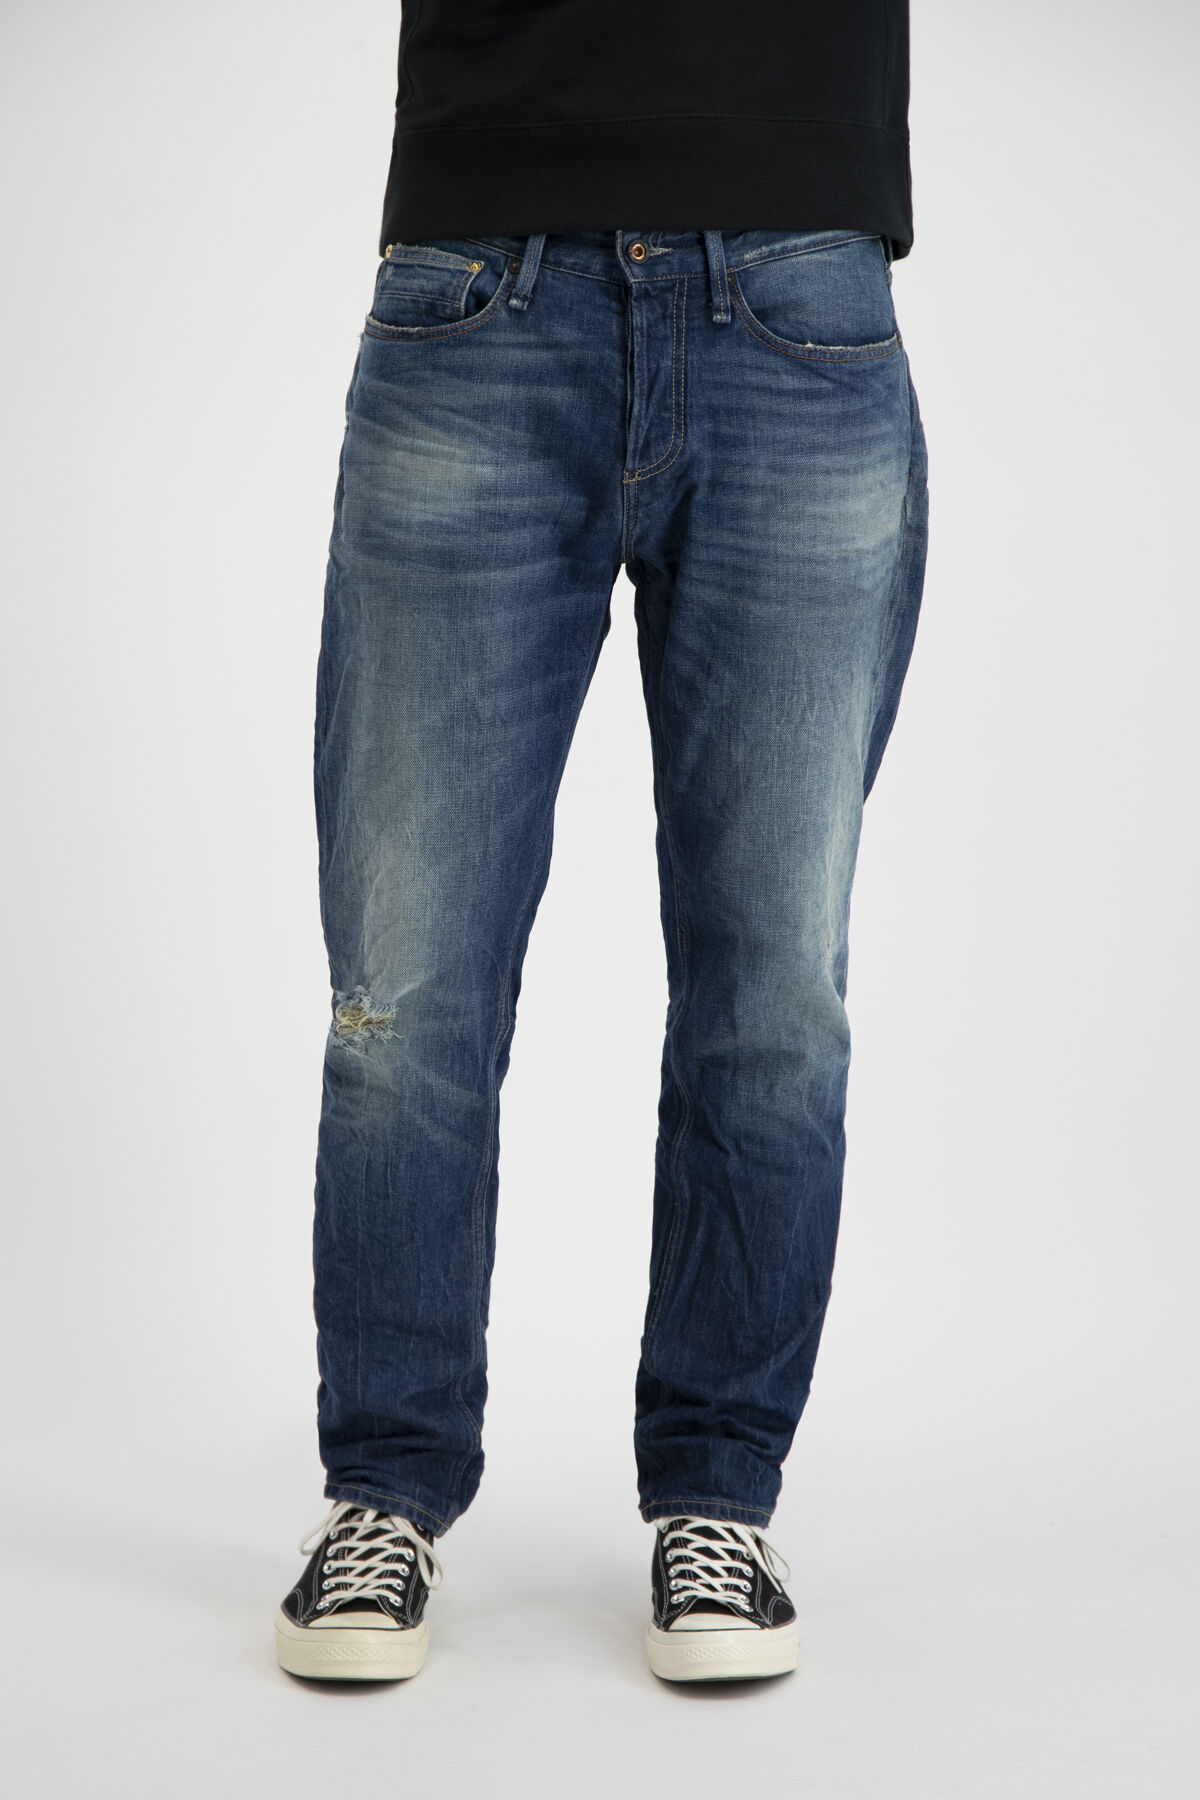 Forge Relaxed Fit Jeans - GREB